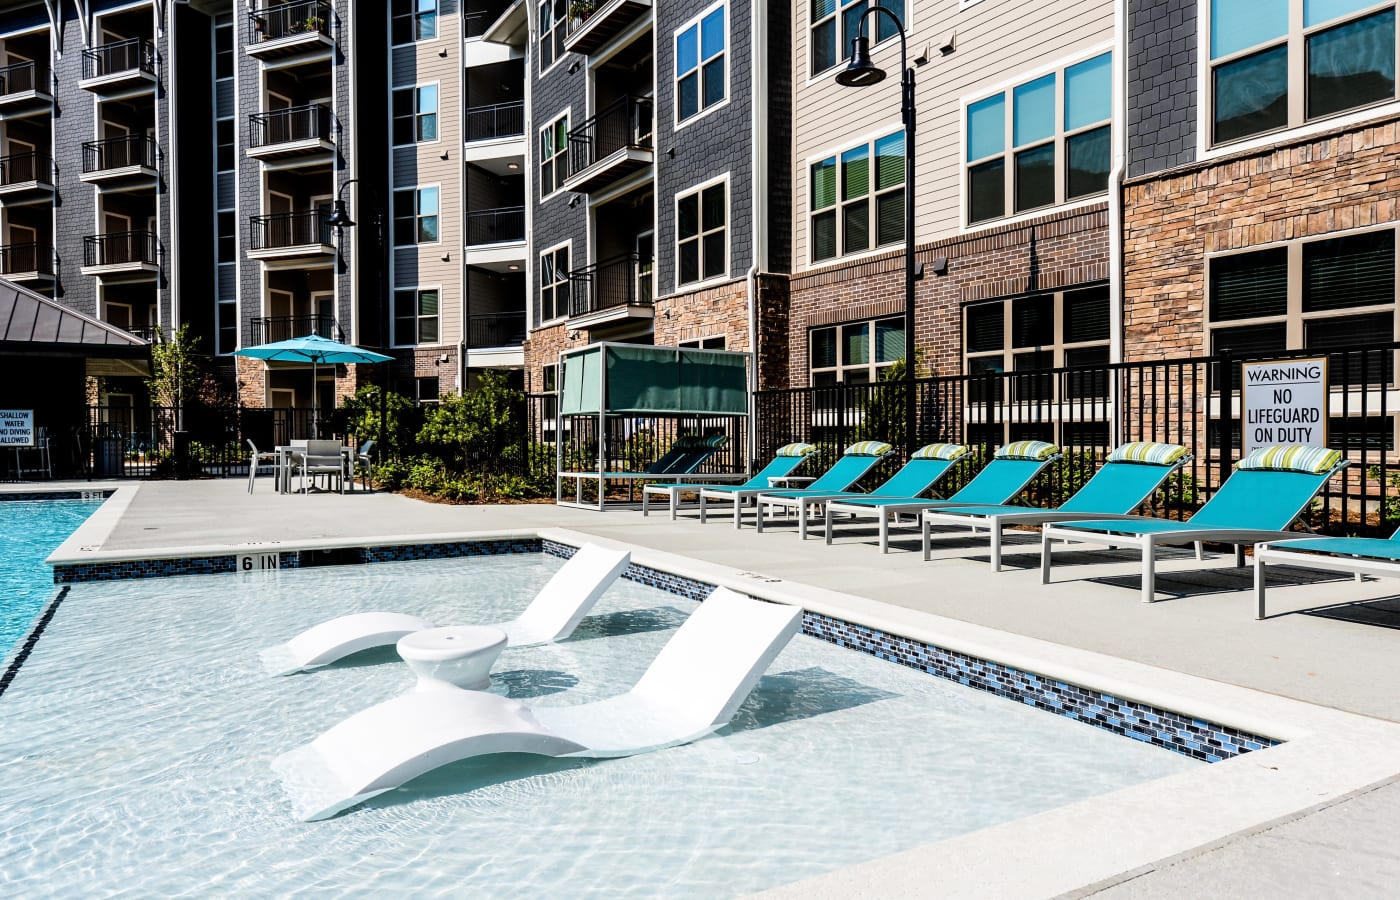 Beautiful swimming pool at apartments in Smyrna, Georgia